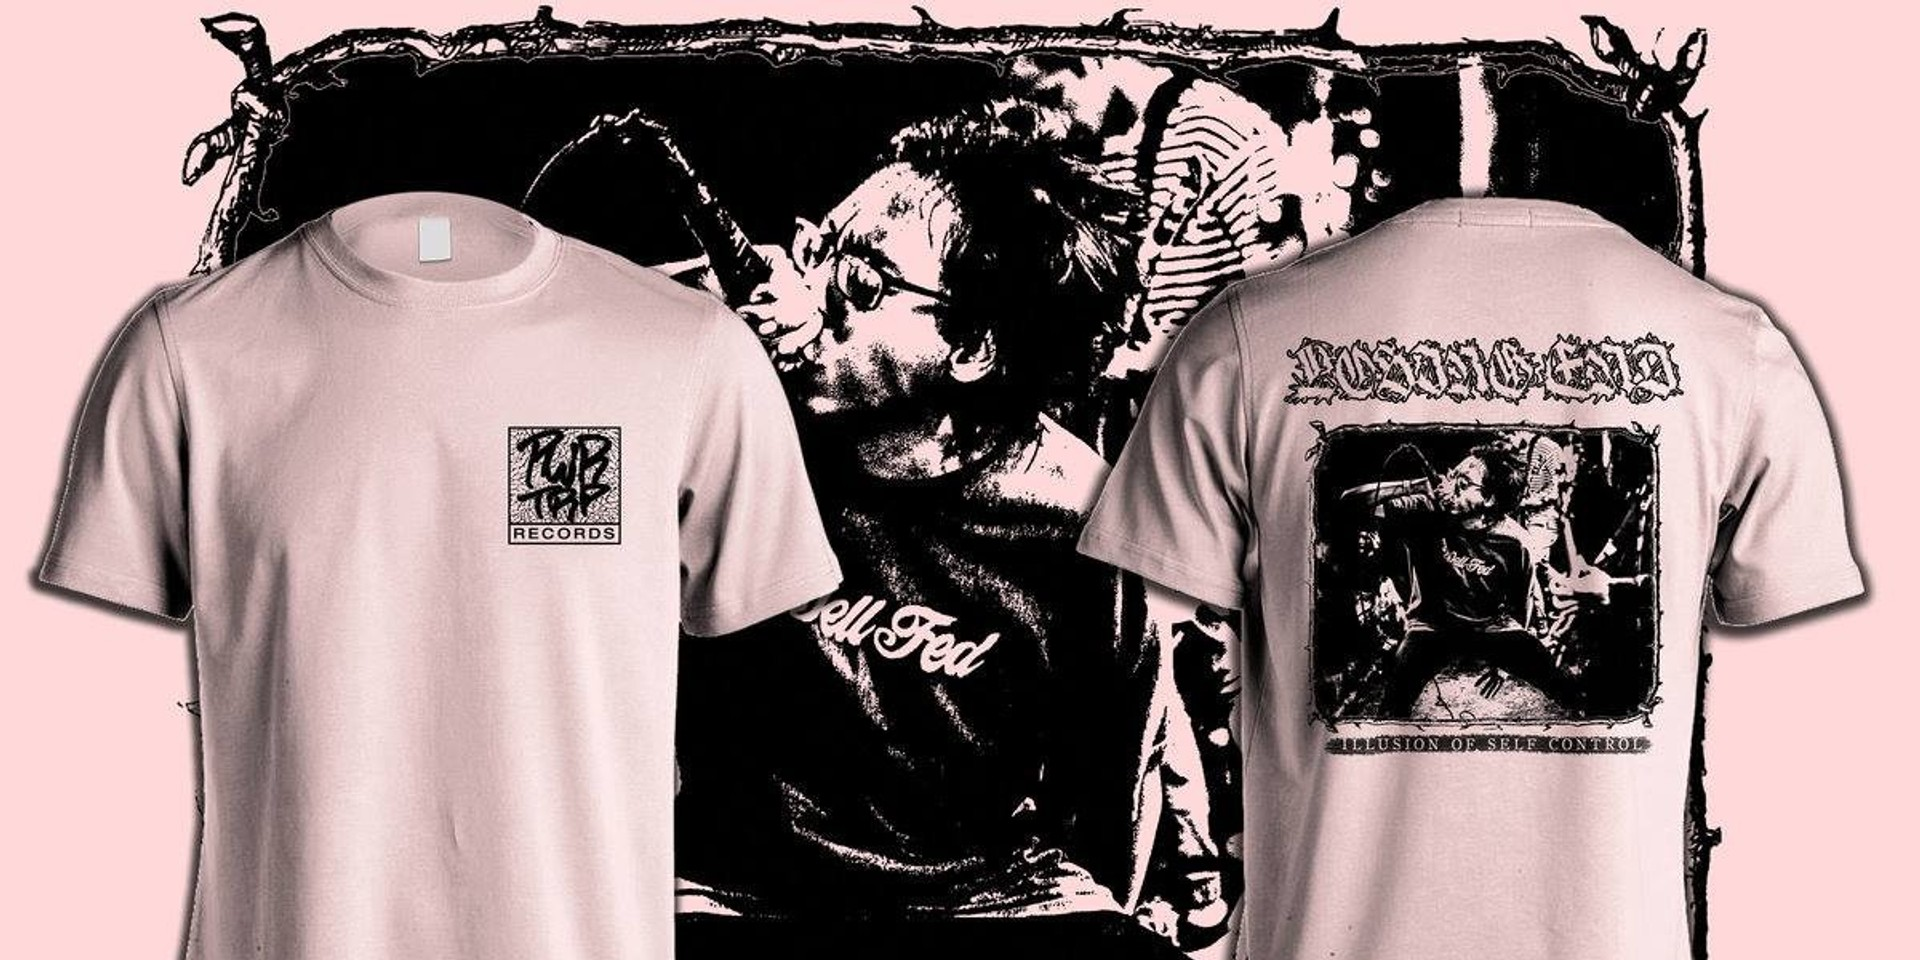 Losing End puts up benefit tees for sale, profits go to Breast Cancer Foundation